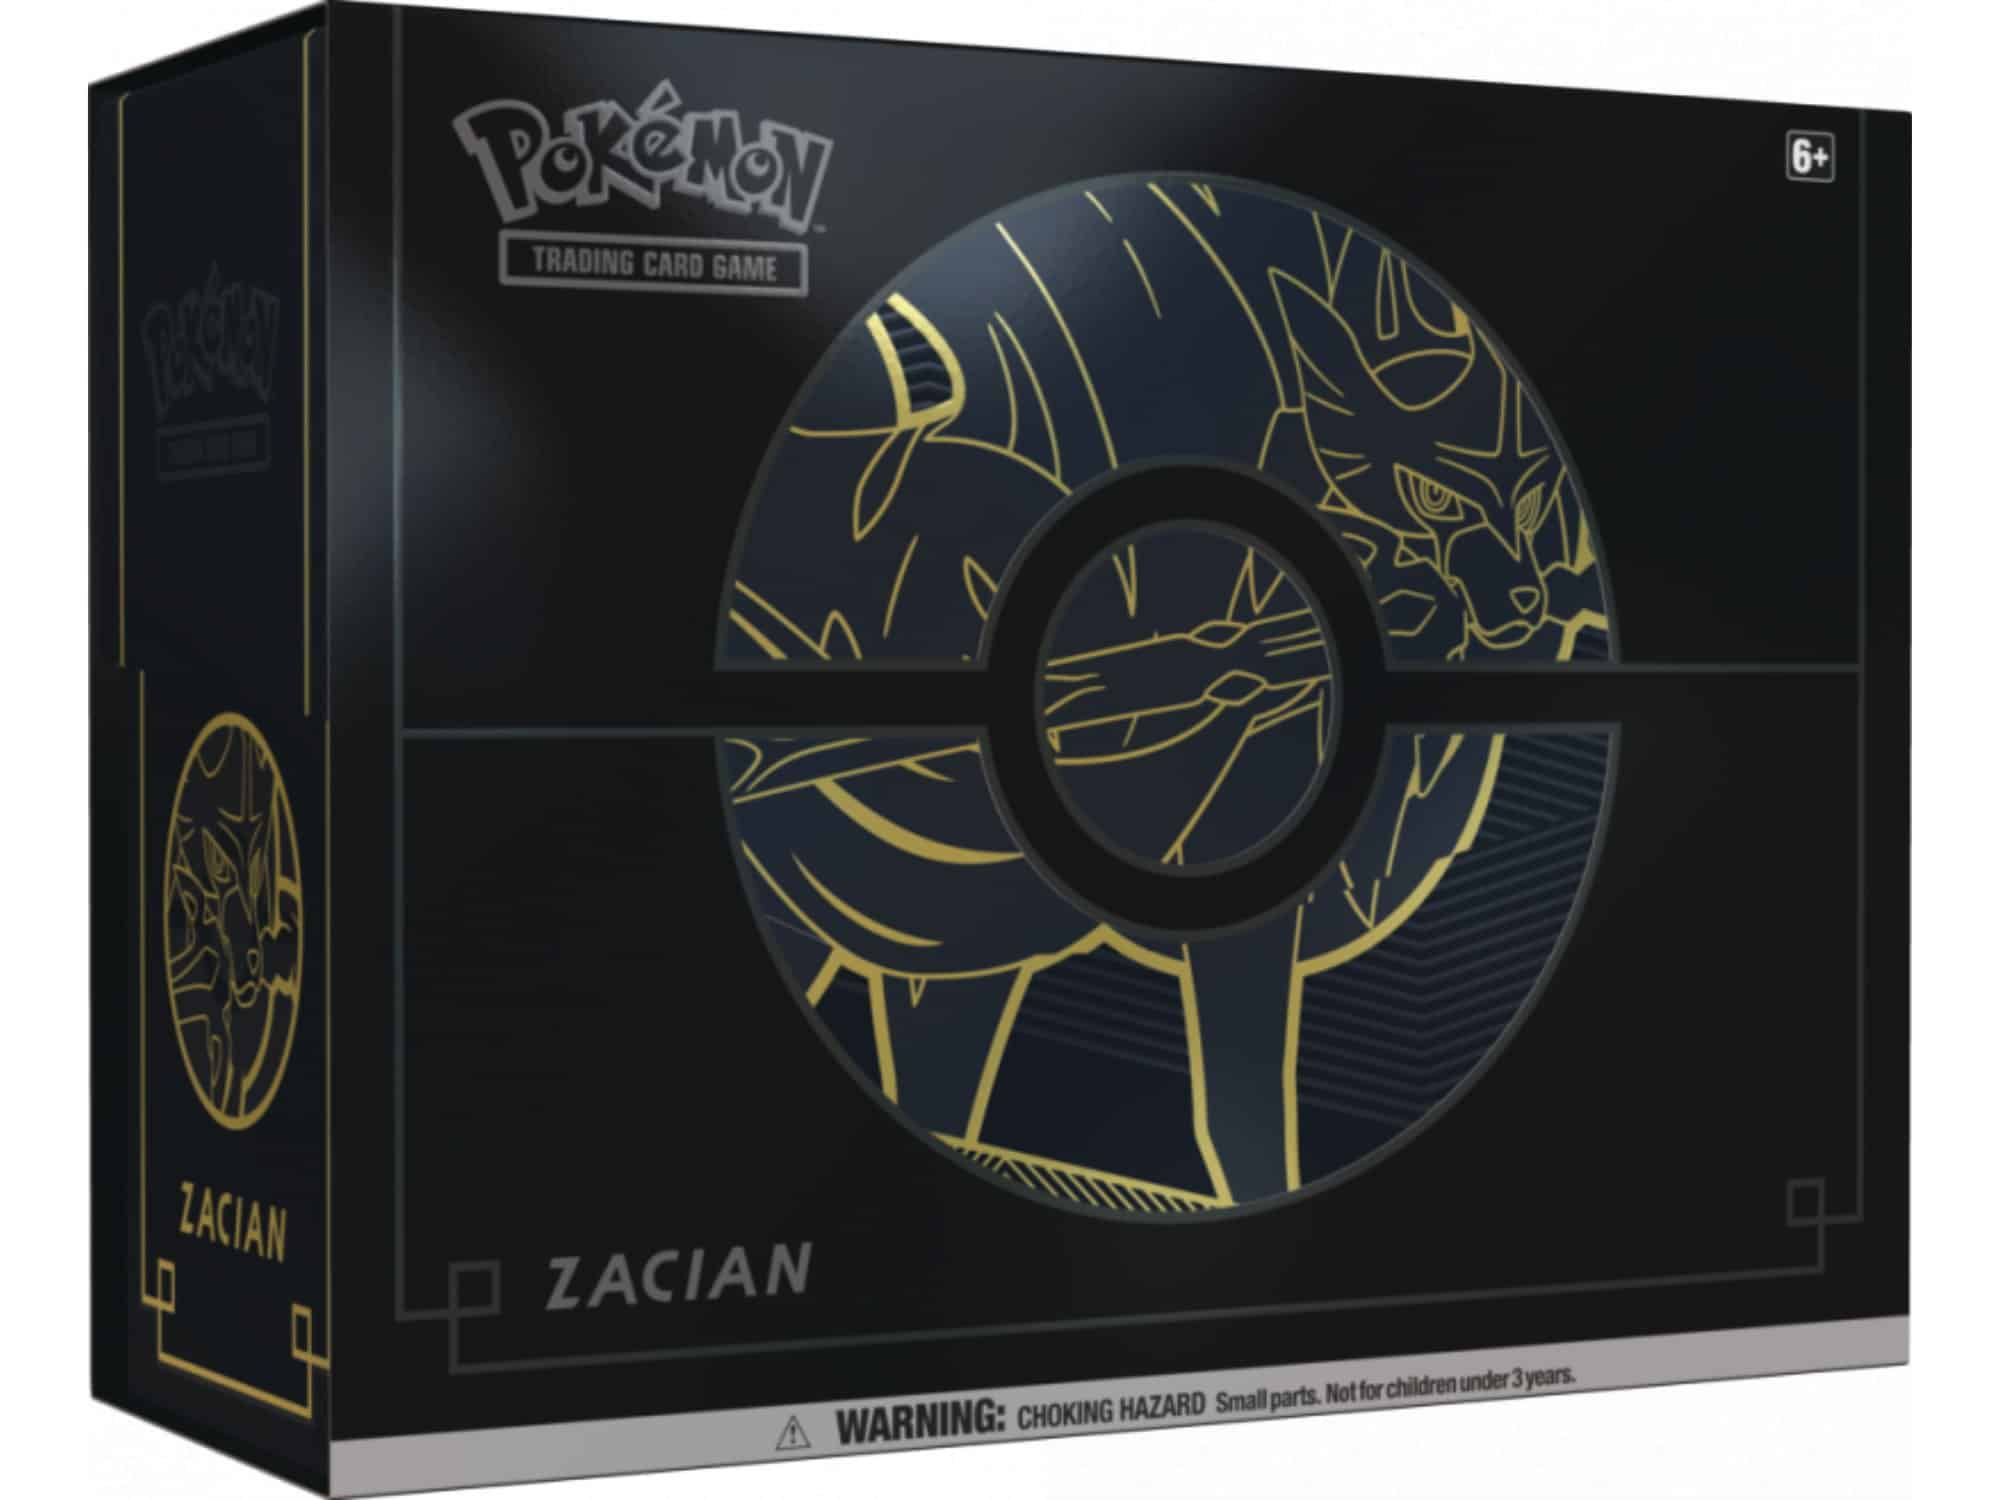 Pokemon Elite Trainer Box Plus Zacian